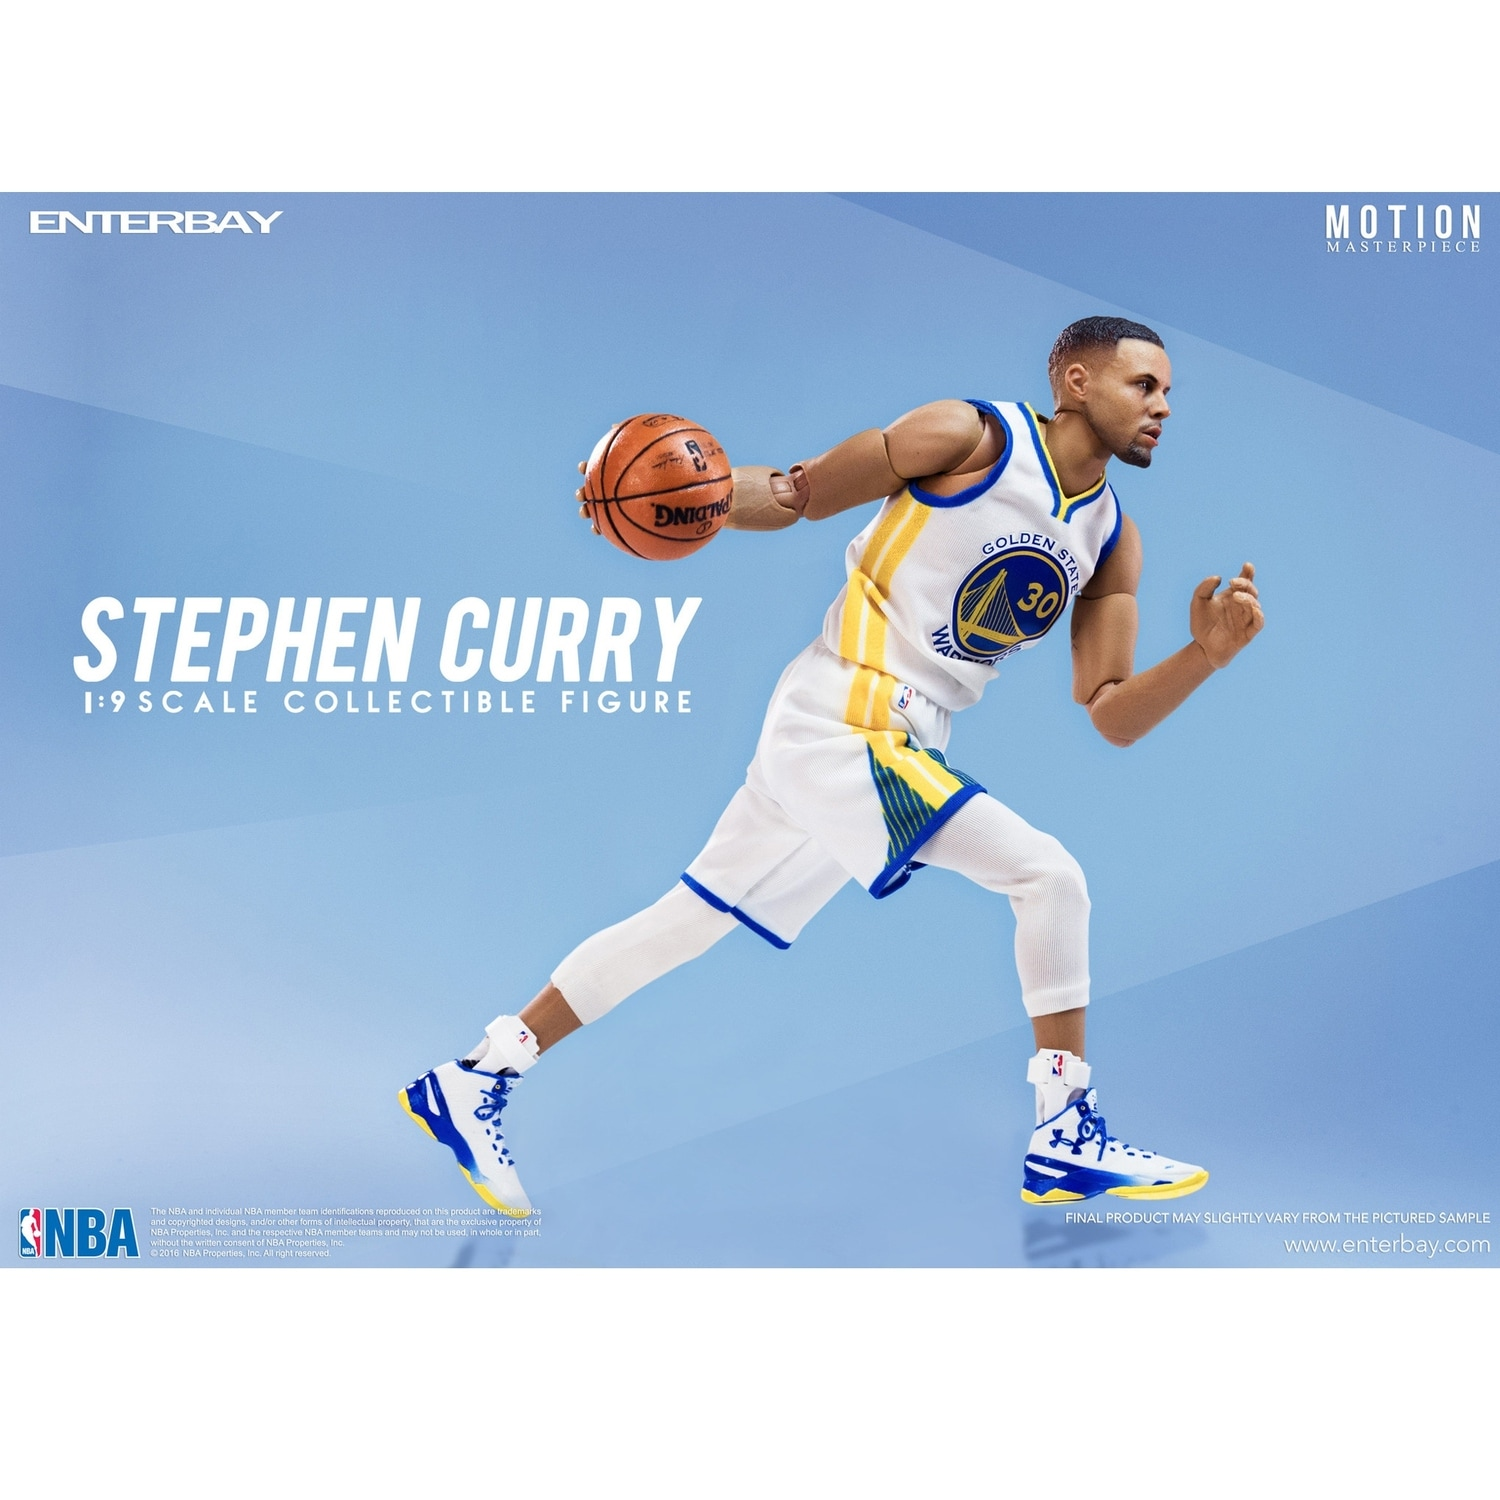 fb93d442a155 Shop Enterbay X NBA Collection Stephen Curry 1 9 Action Figure Collectible  Figurine - multi - Free Shipping Today - Overstock - 12316292